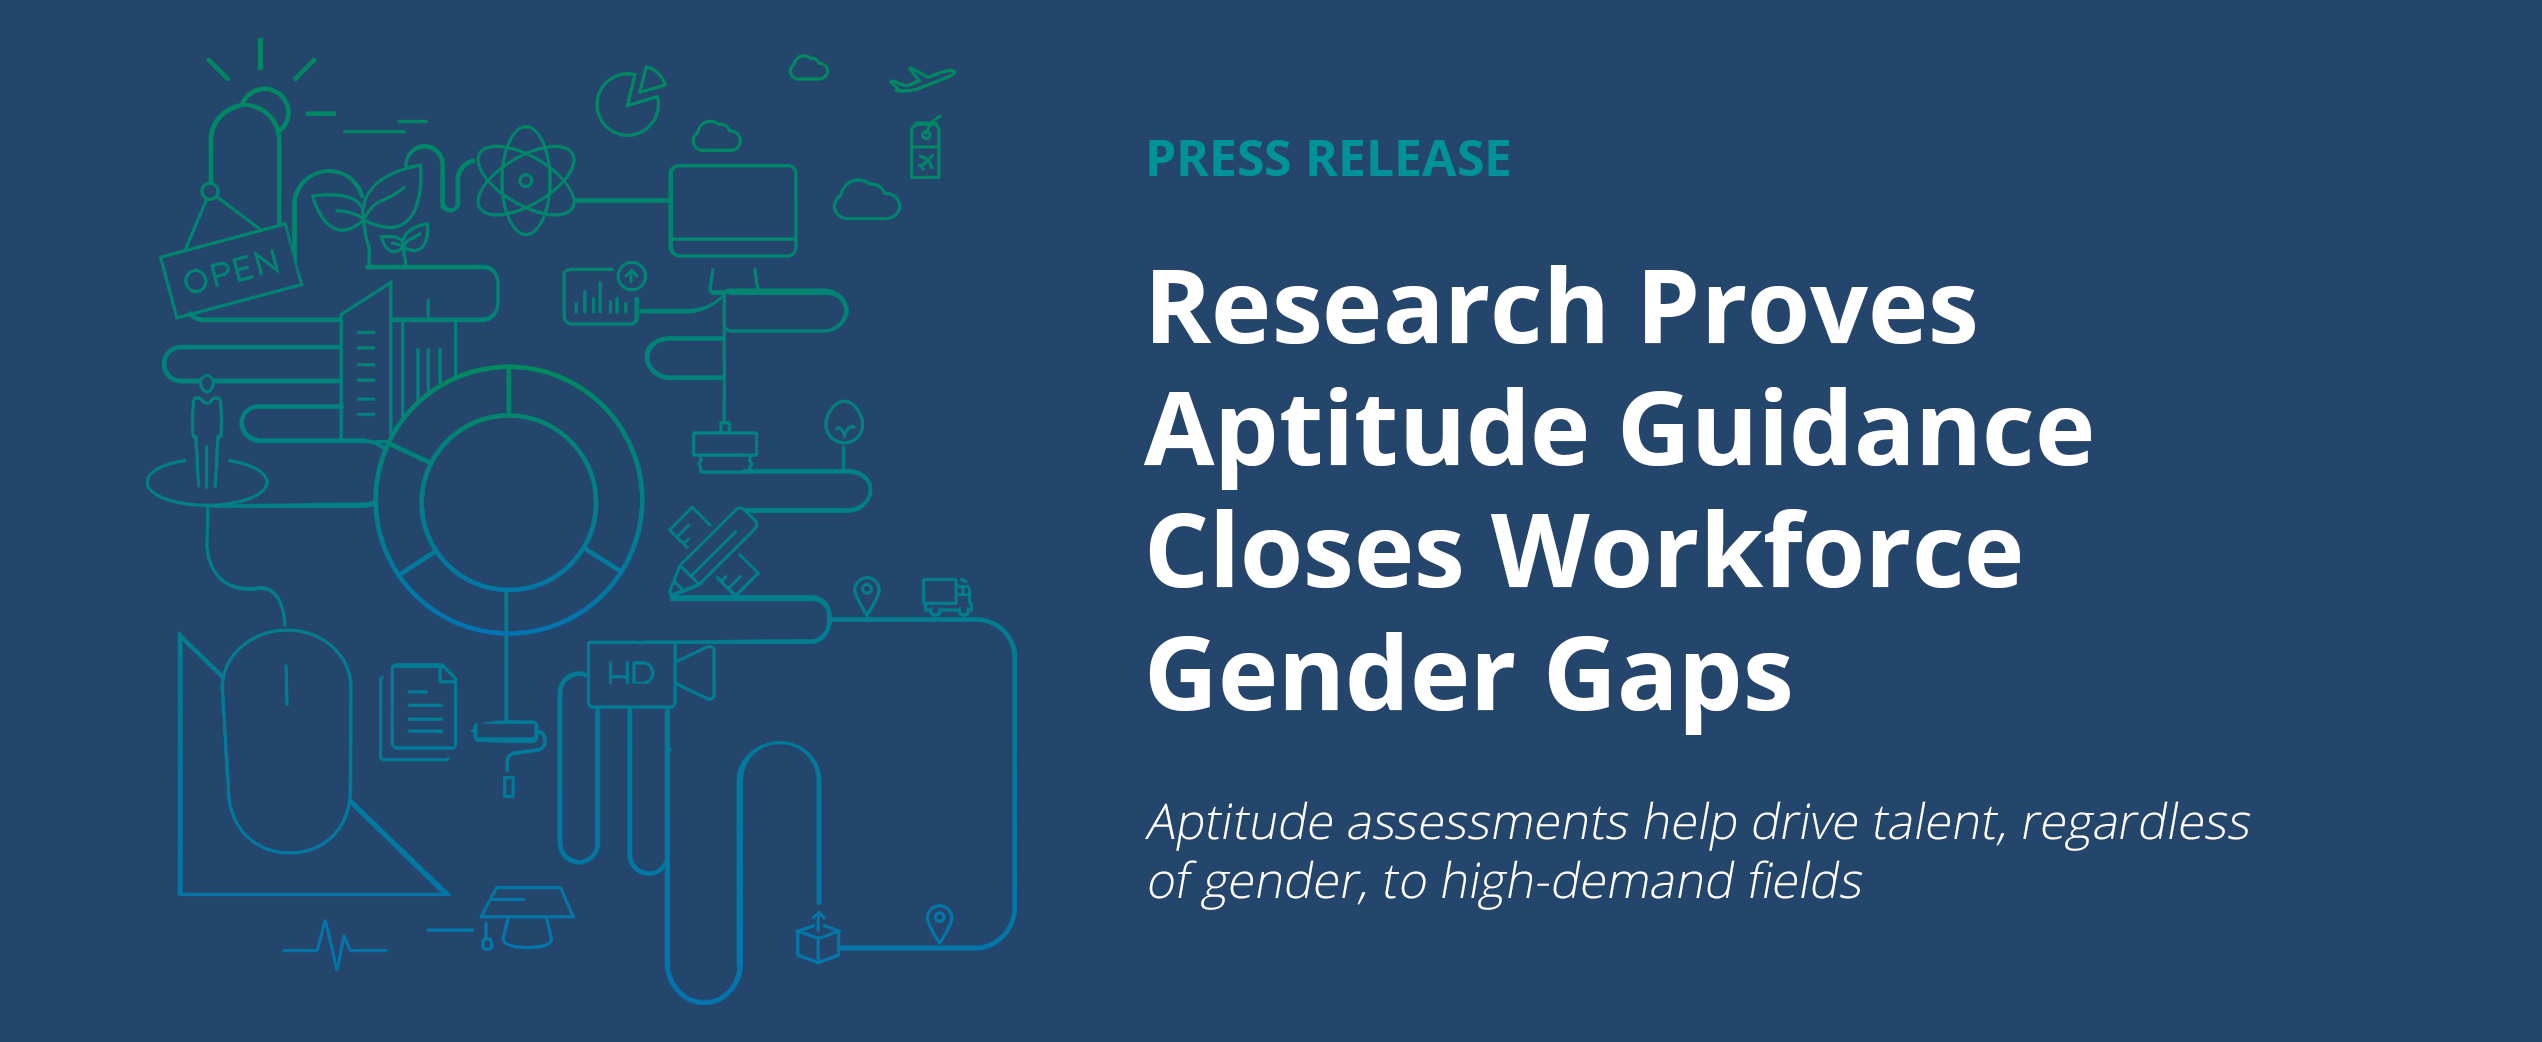 Research Proves Aptitude Guidance Closes Workforce Gender Gaps